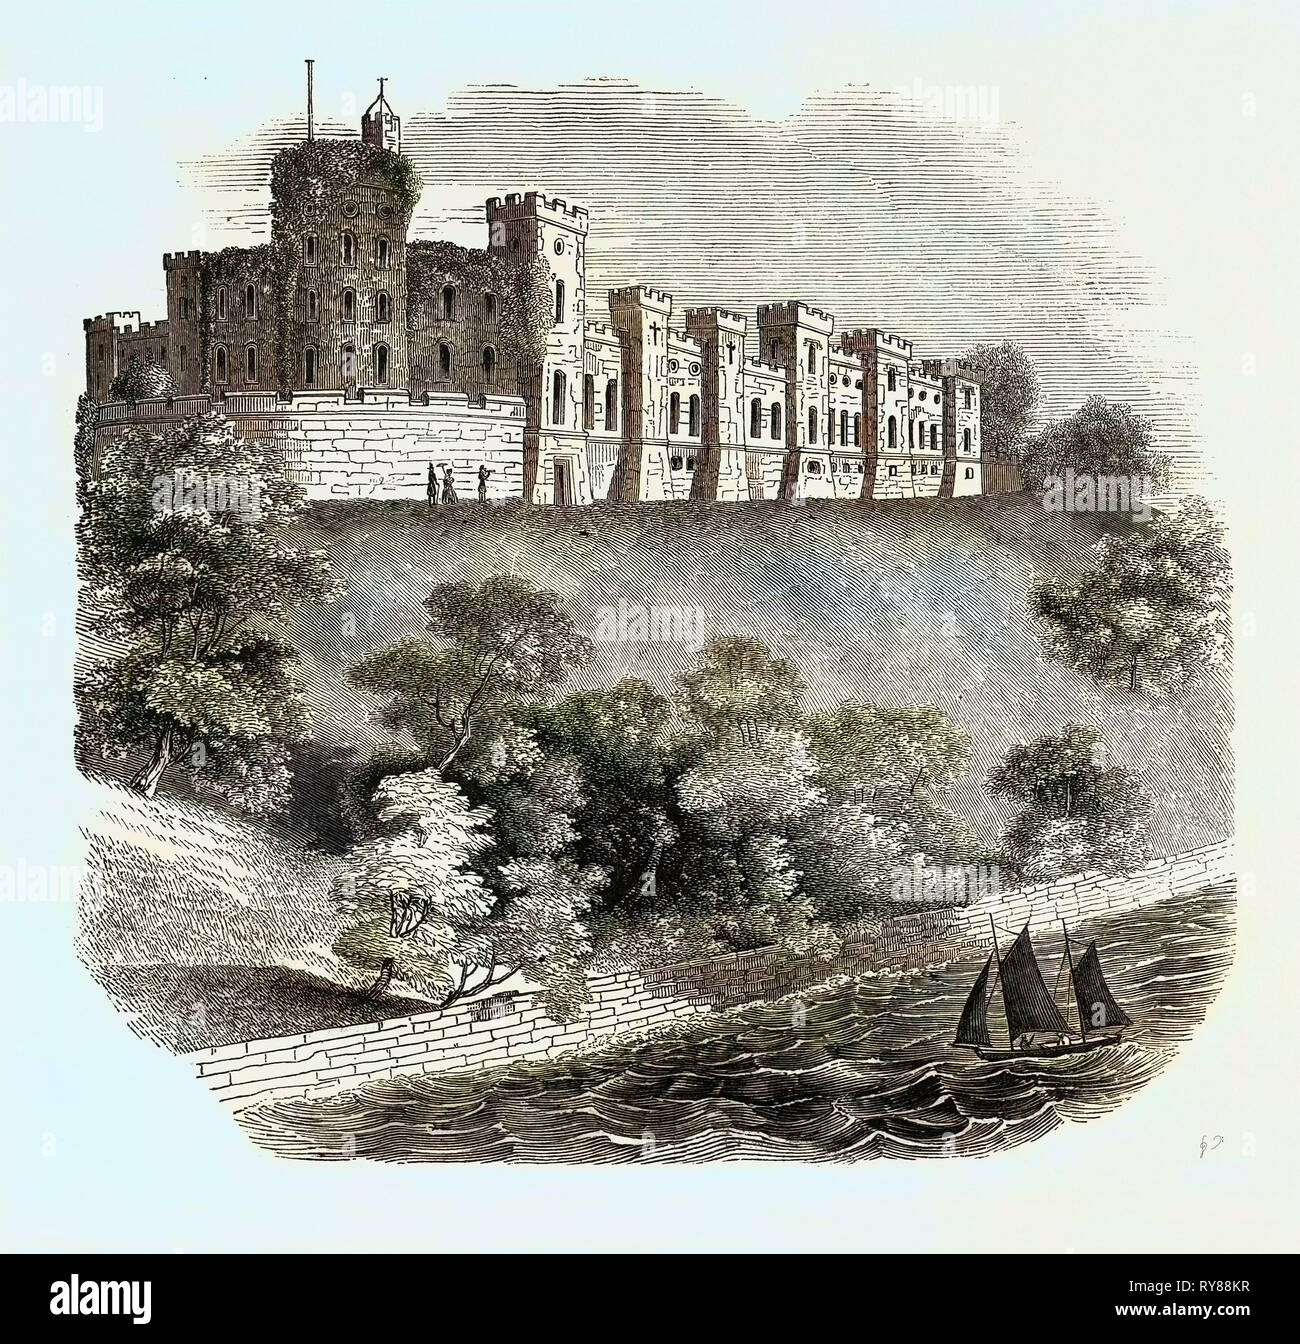 antique print ISLE OF WIGHT Norris Castle 1844